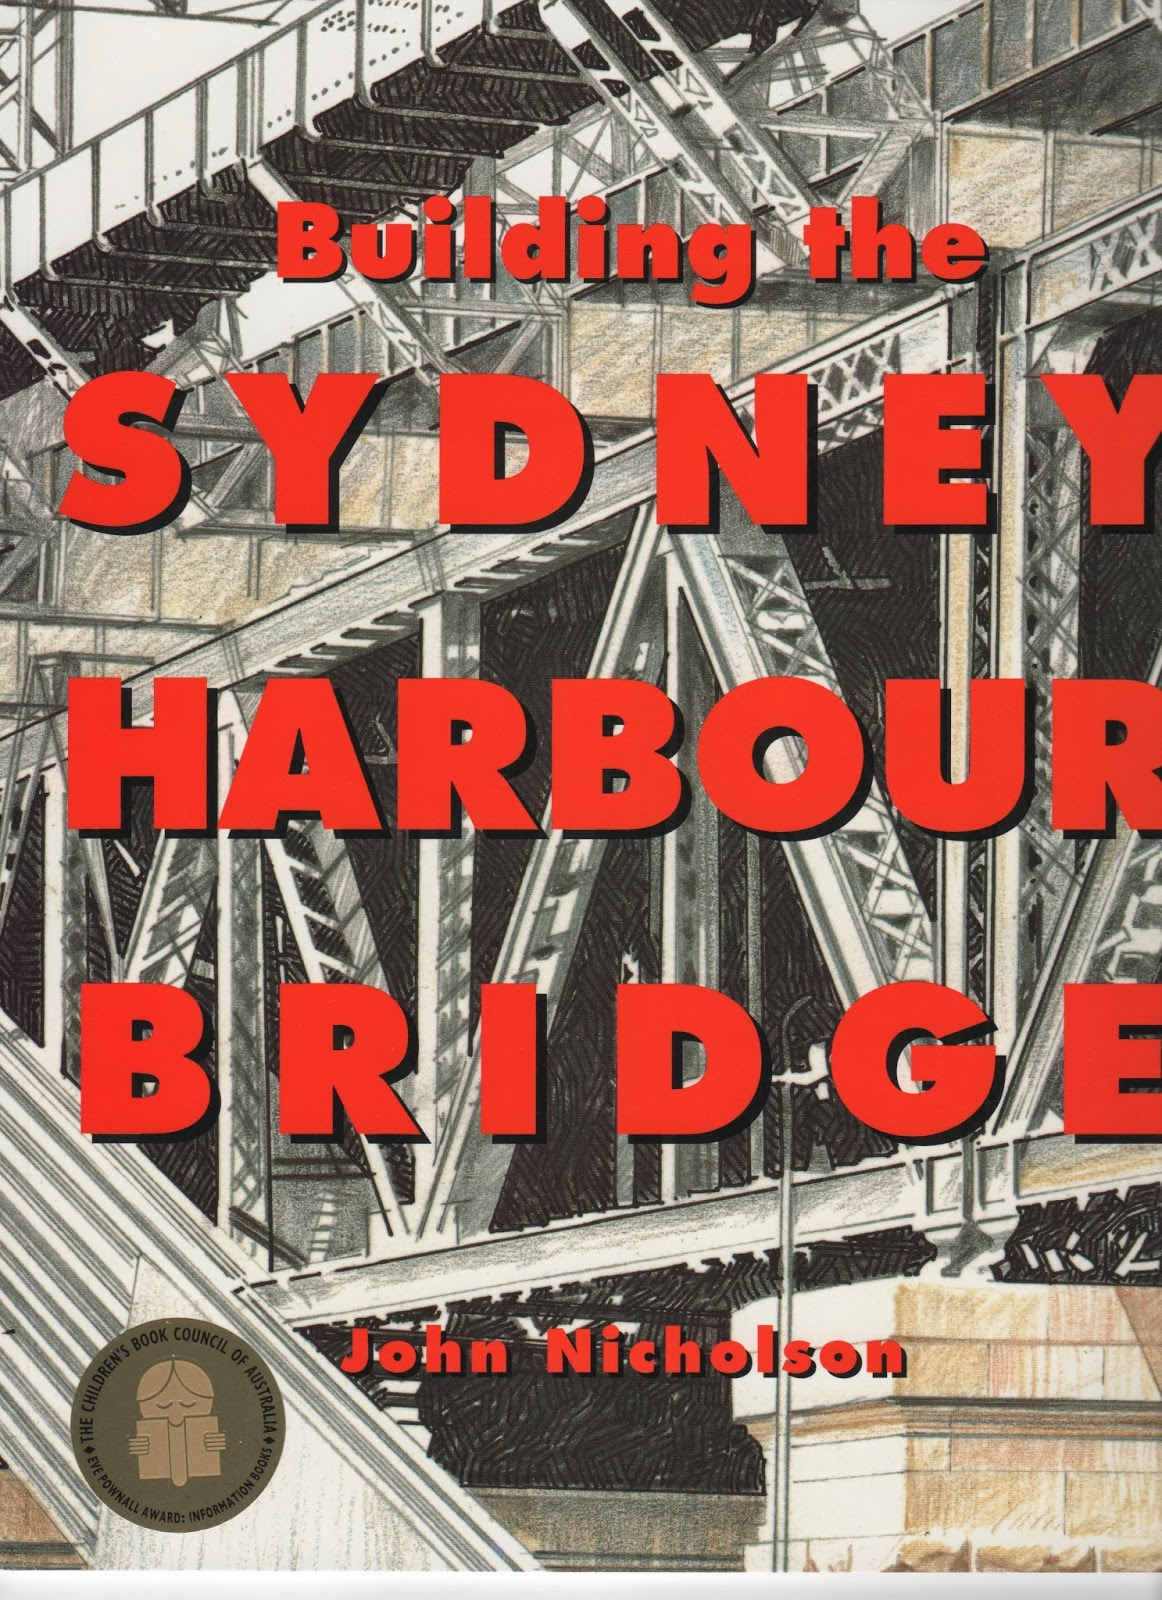 Colour childrens literature - I Found A Brand New Copy Of John Nicholson S 2000 Publication Building The Sydney Harbour Bridge It Is Full Of Accurate Depictions In Full Colour Of The